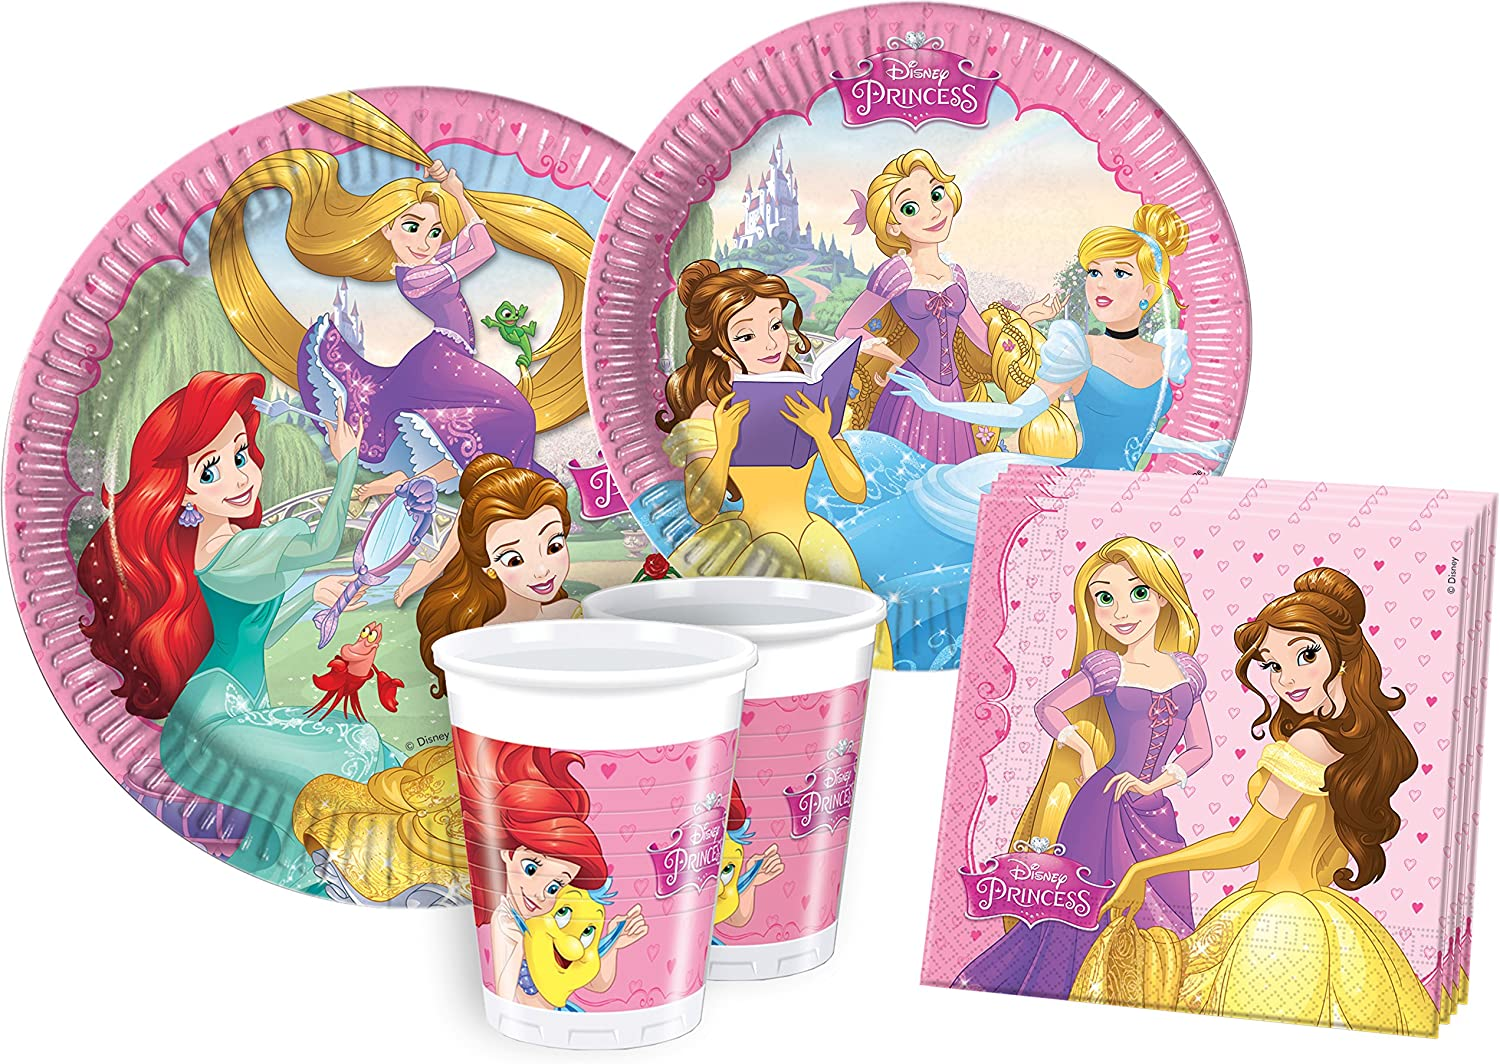 Ciao Kit Party Tabla Disney Princesa soñando (Princess Dreaming) S (8 persone) Multicolor: Amazon.es: Juguetes y juegos